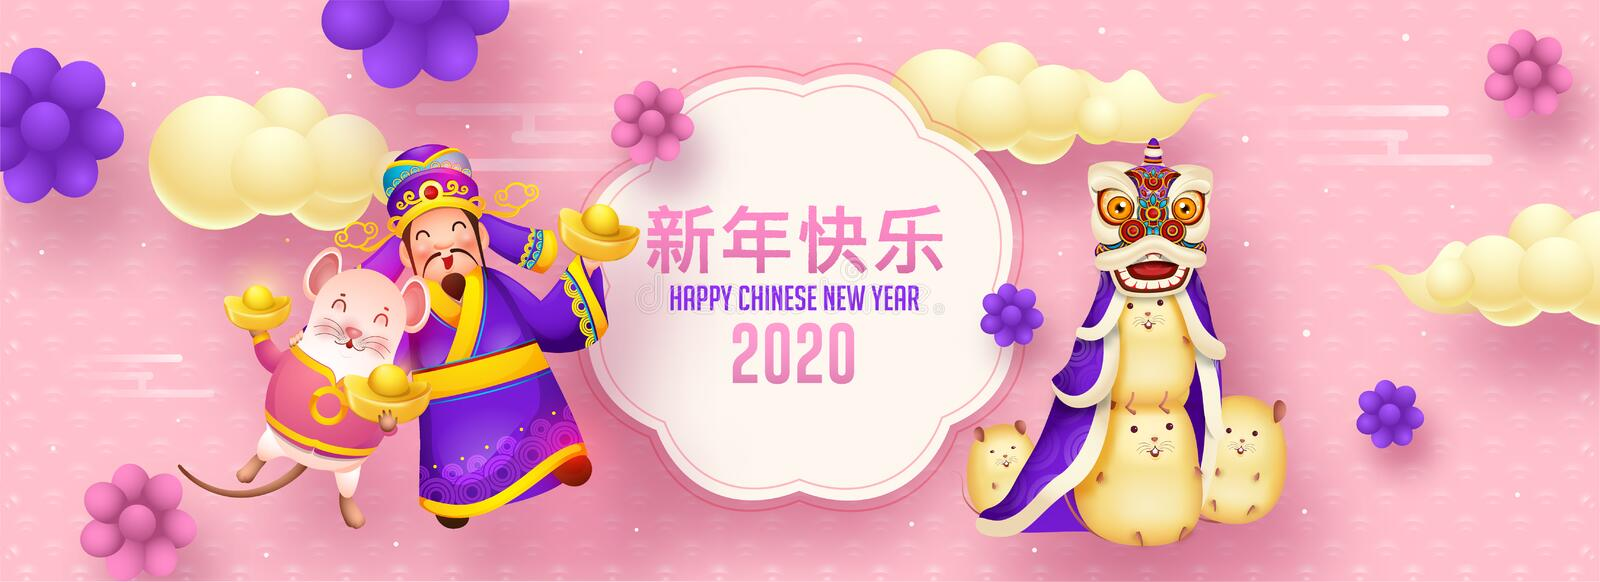 Pink header or banner design with Happy New Year text in Chinese Language, cartoon character rat wearing dragon costume and vector illustration